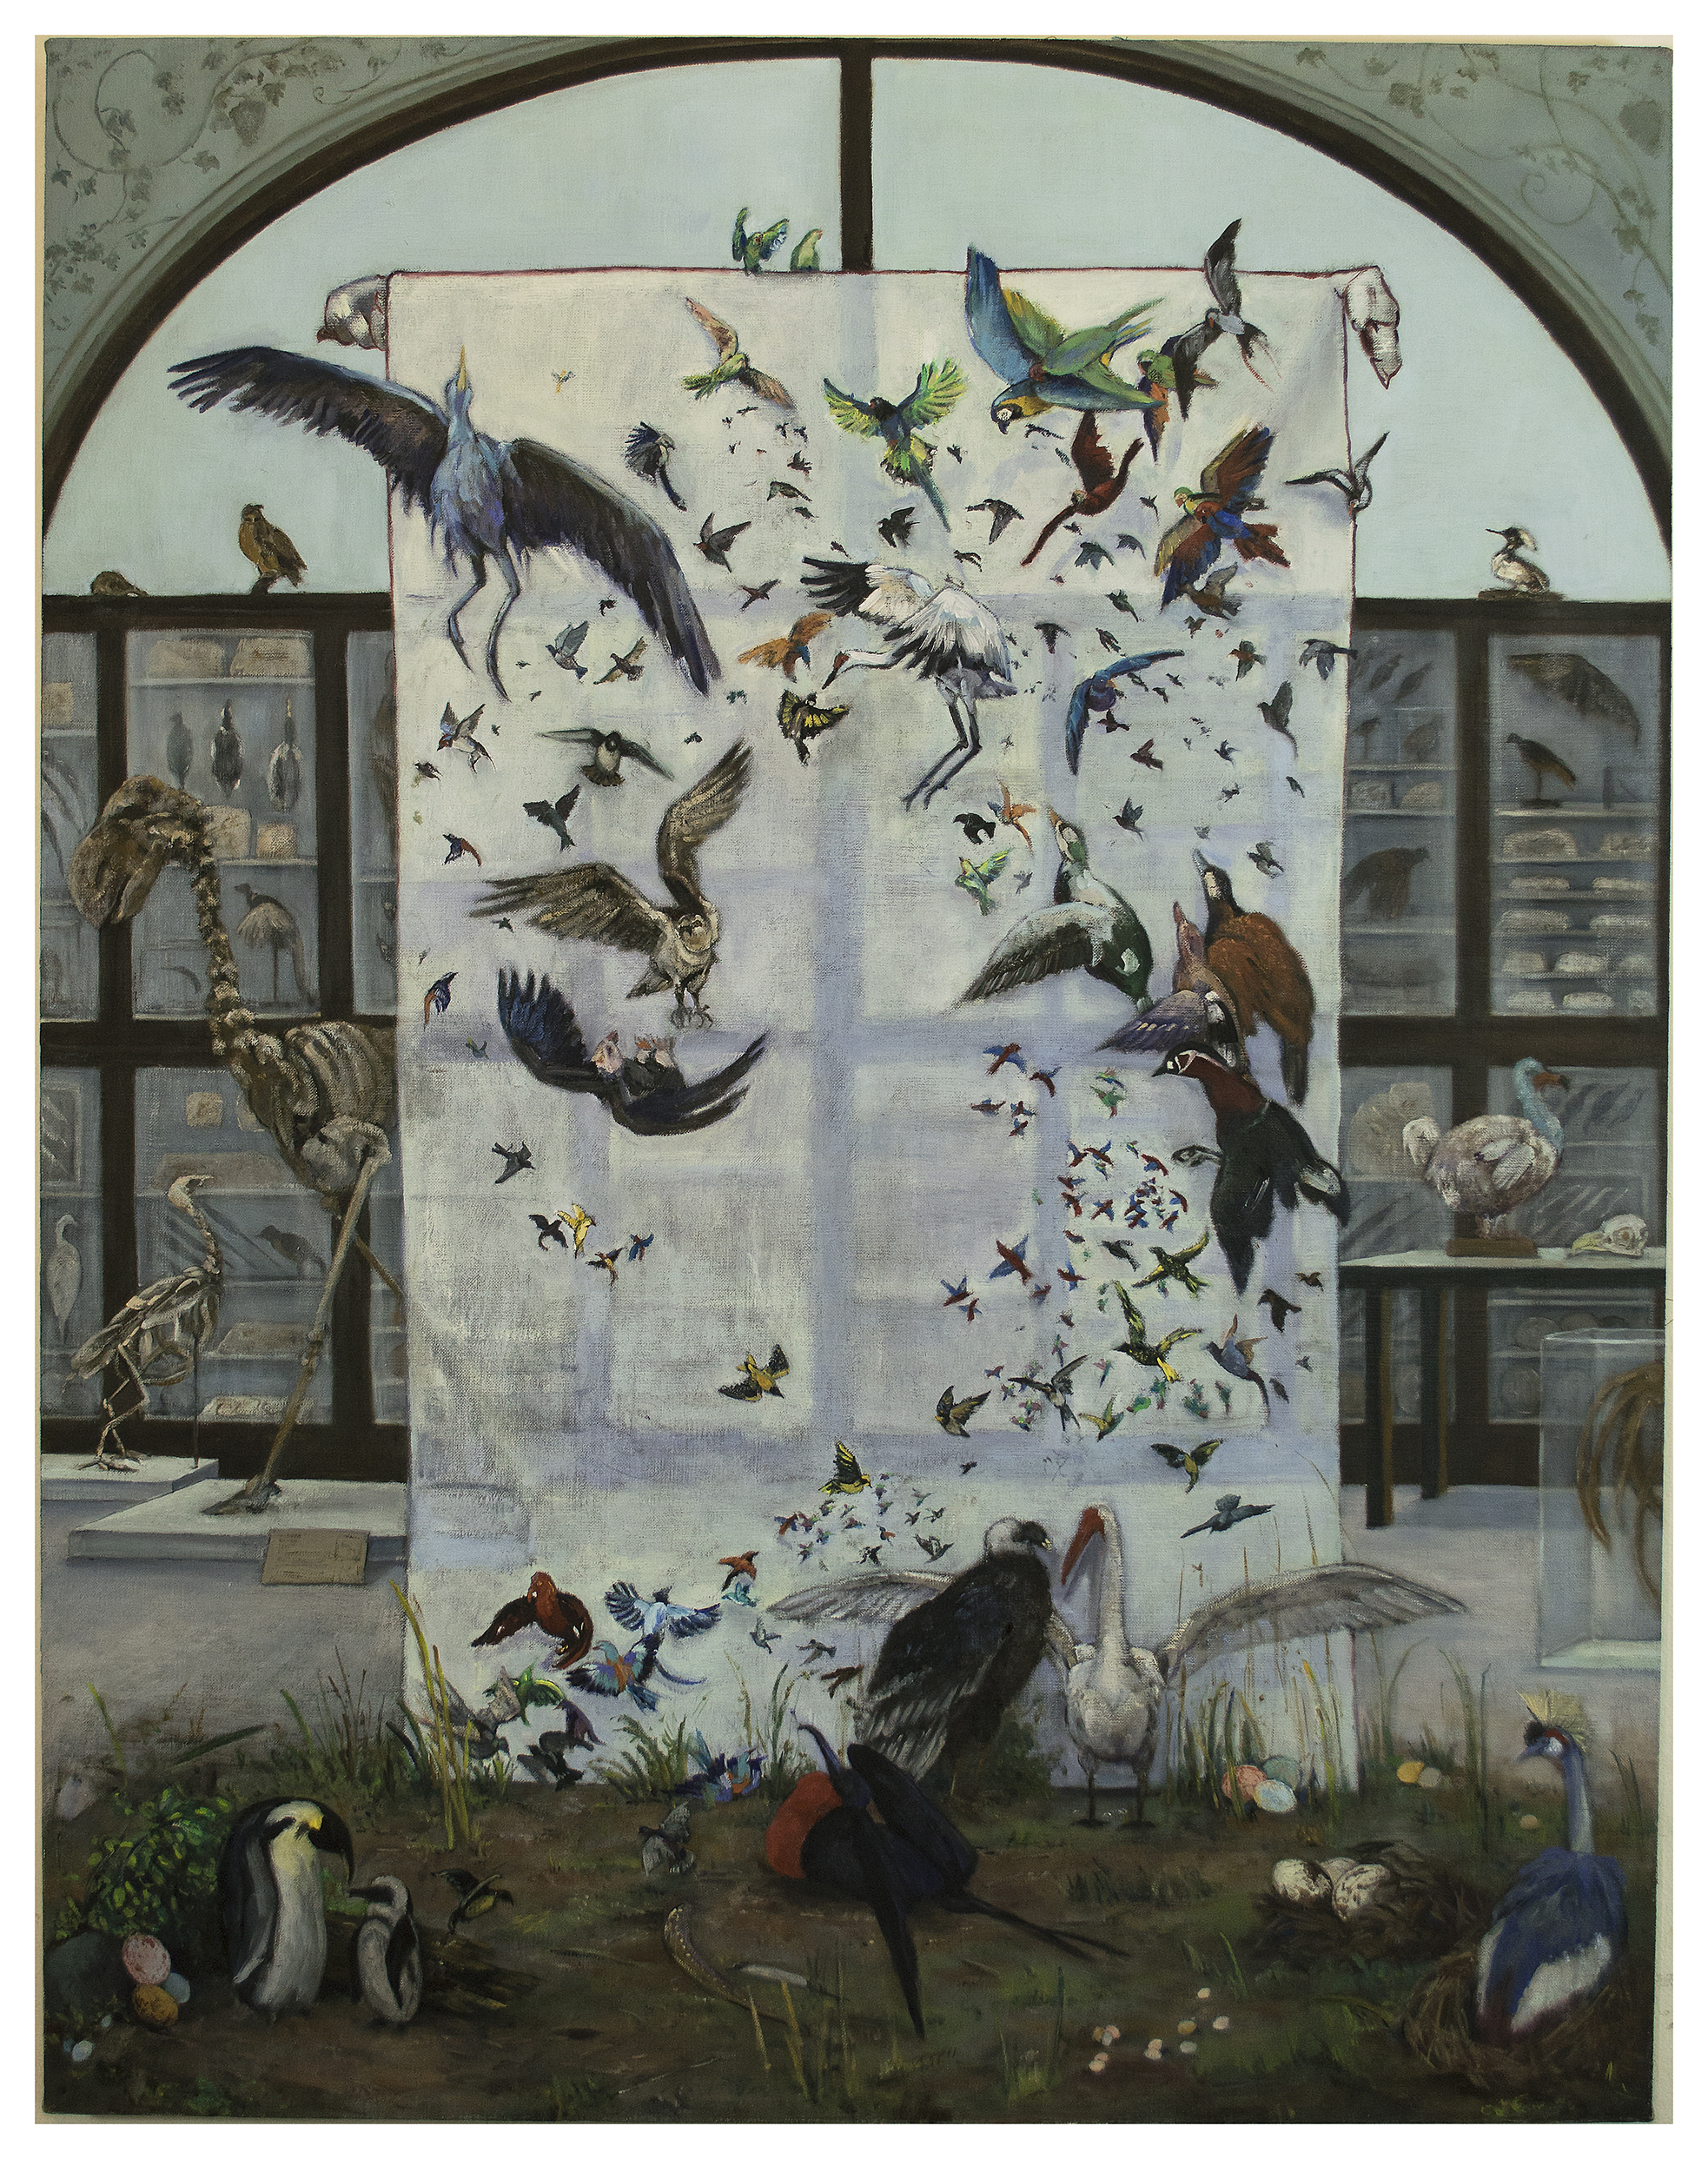 """17.  Last of Their Kind: Critically Endangered Birds   Oil paint on linen. 2018. 36"""" x 28"""""""